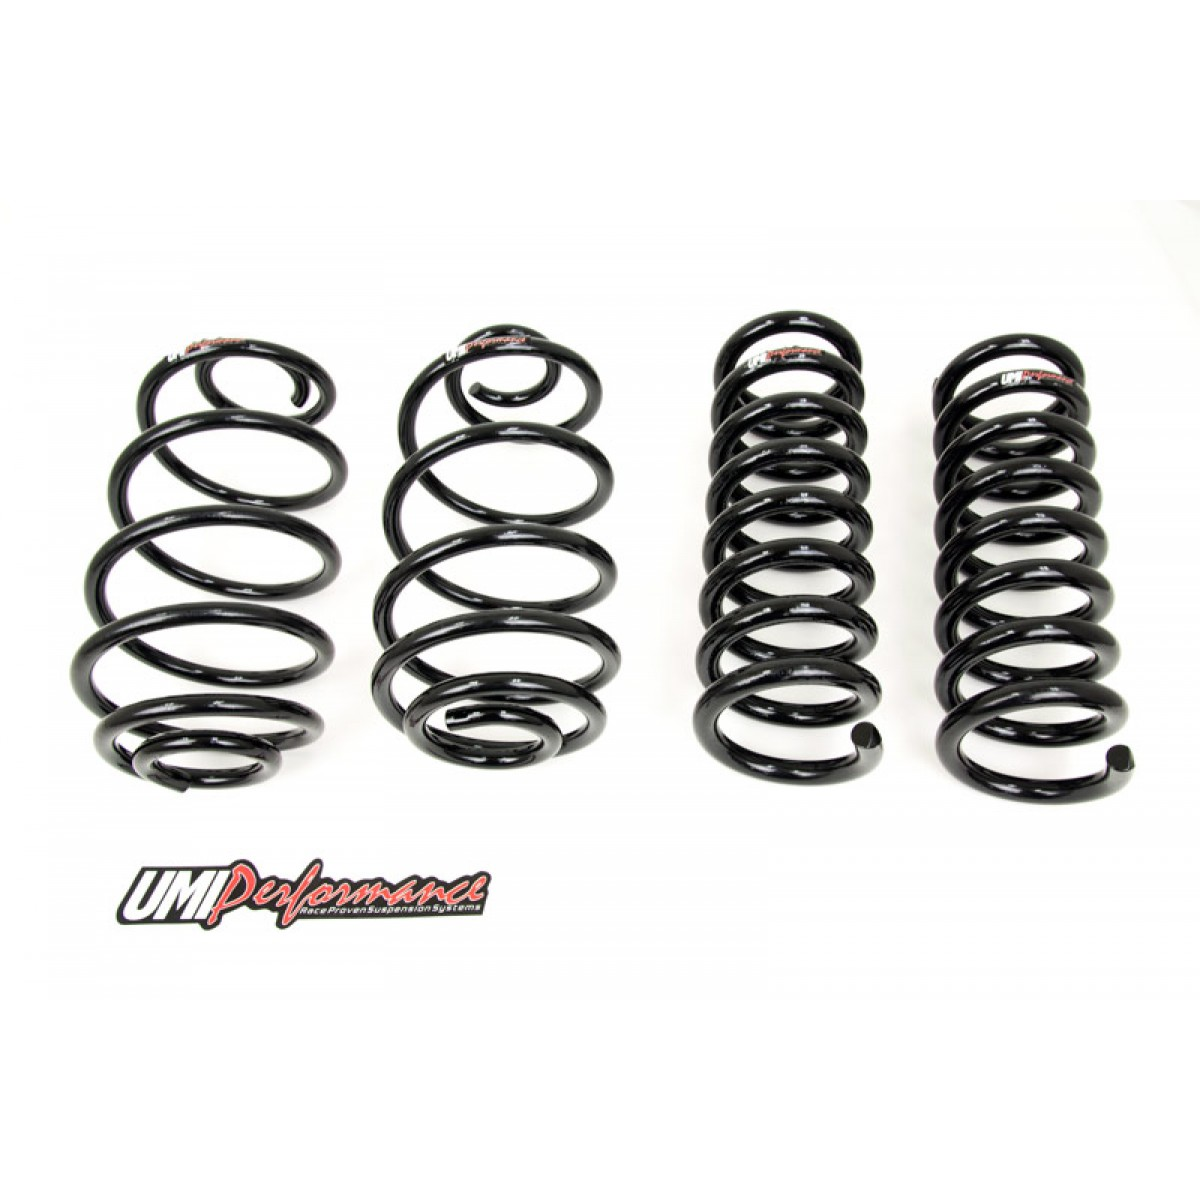 67 72 Pontiac Lemans Gto Tempest 1 Lowering Spring Kit Umi 2006 Wiring Diagram Performance 4050